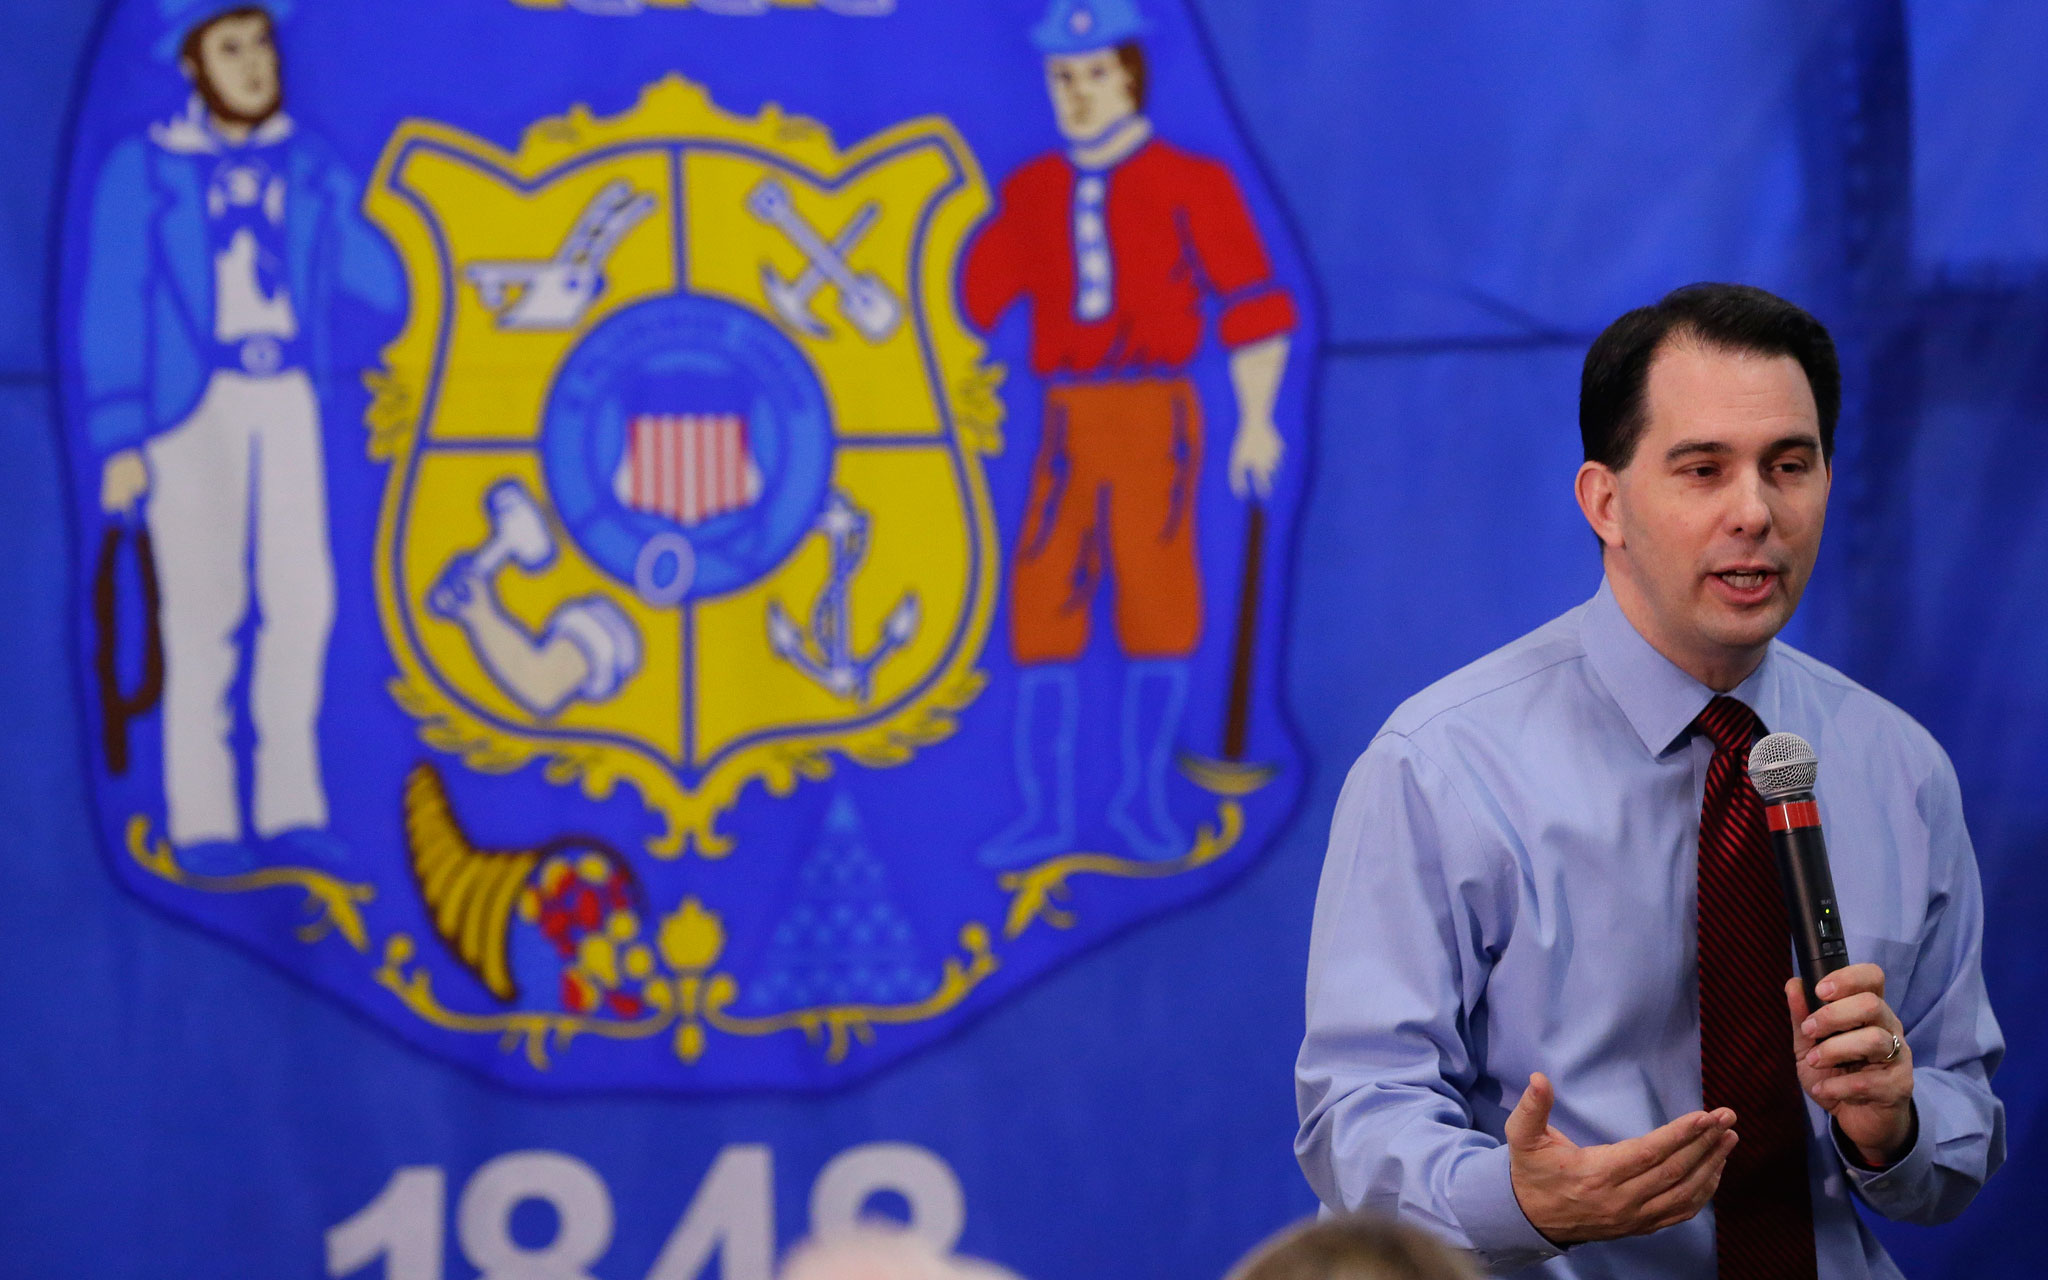 Gov. Scott Walker, now campaigning for a third term, missed on two education promises he made during his 2014 campaign for a second term. (Milwaukee Journal Sentinel)